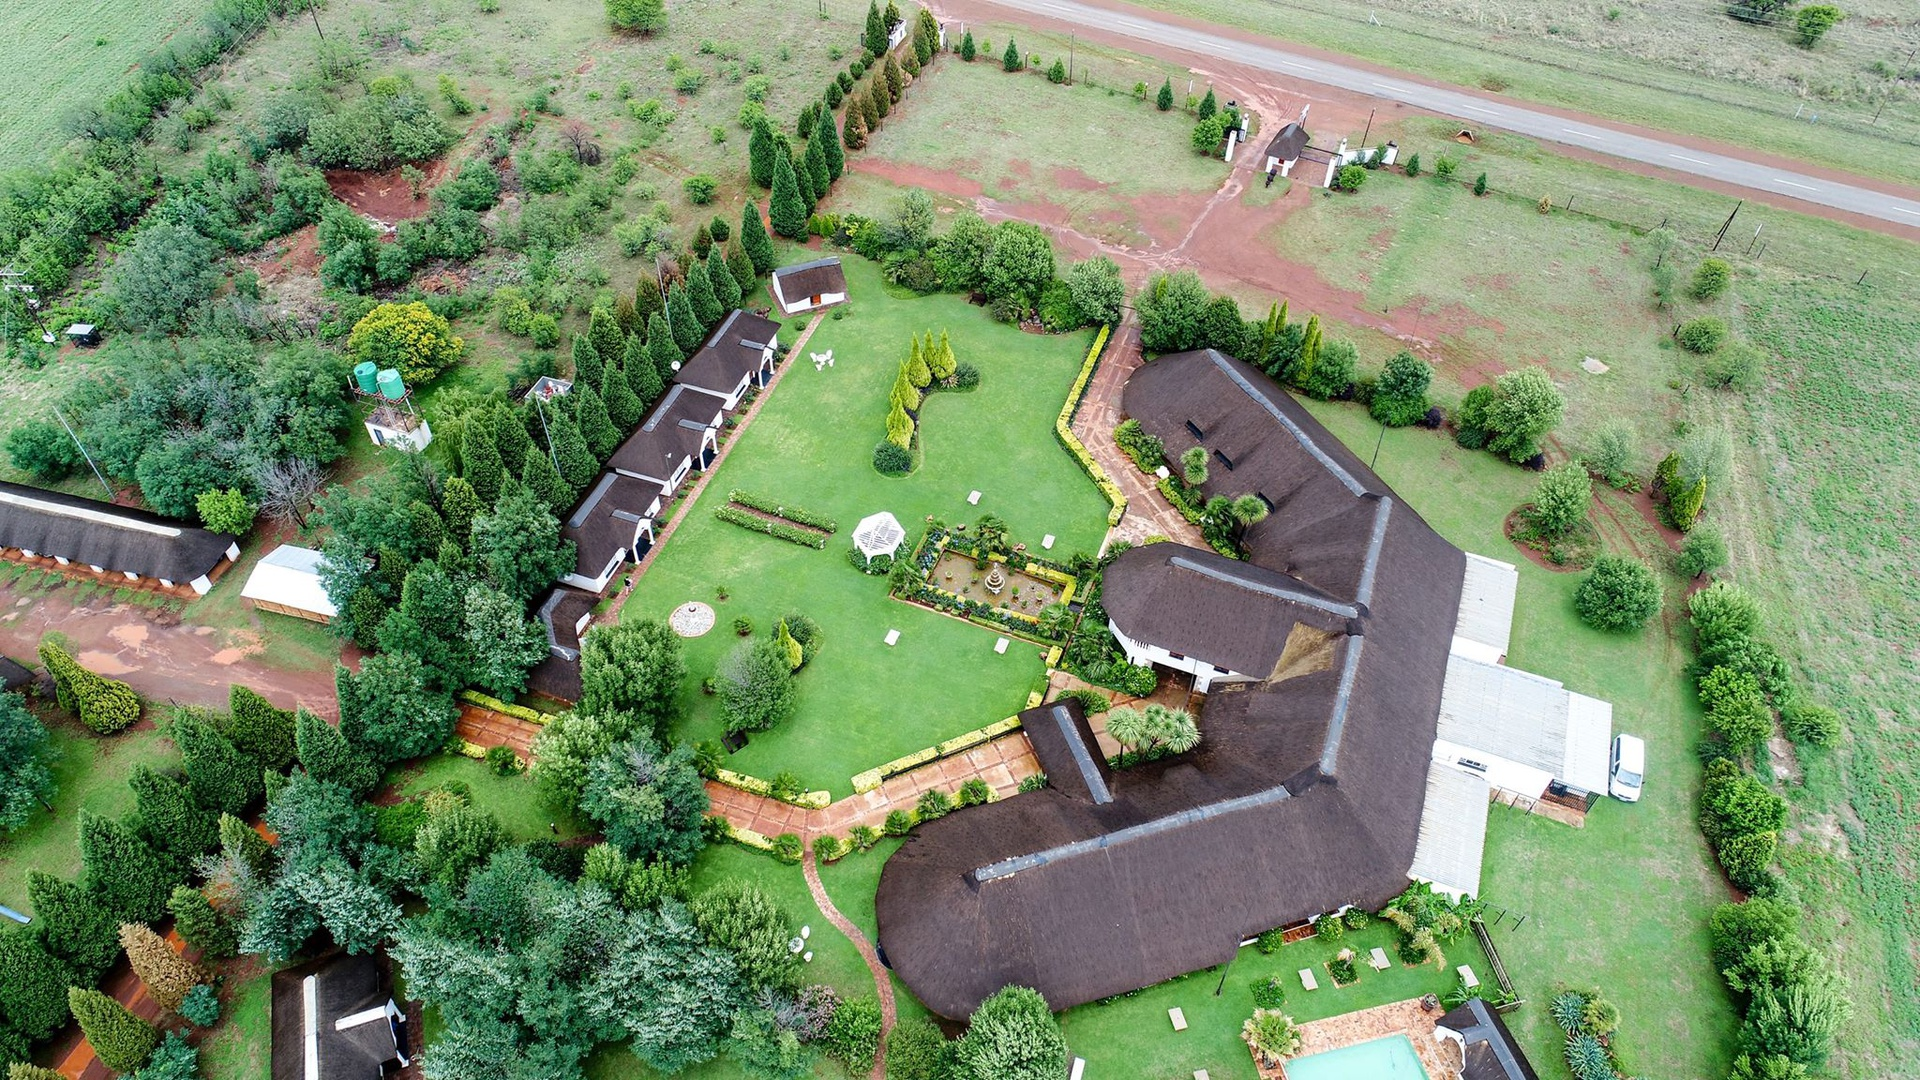 Investment / Residential investment in Oudedorp - Drone 3.jpg